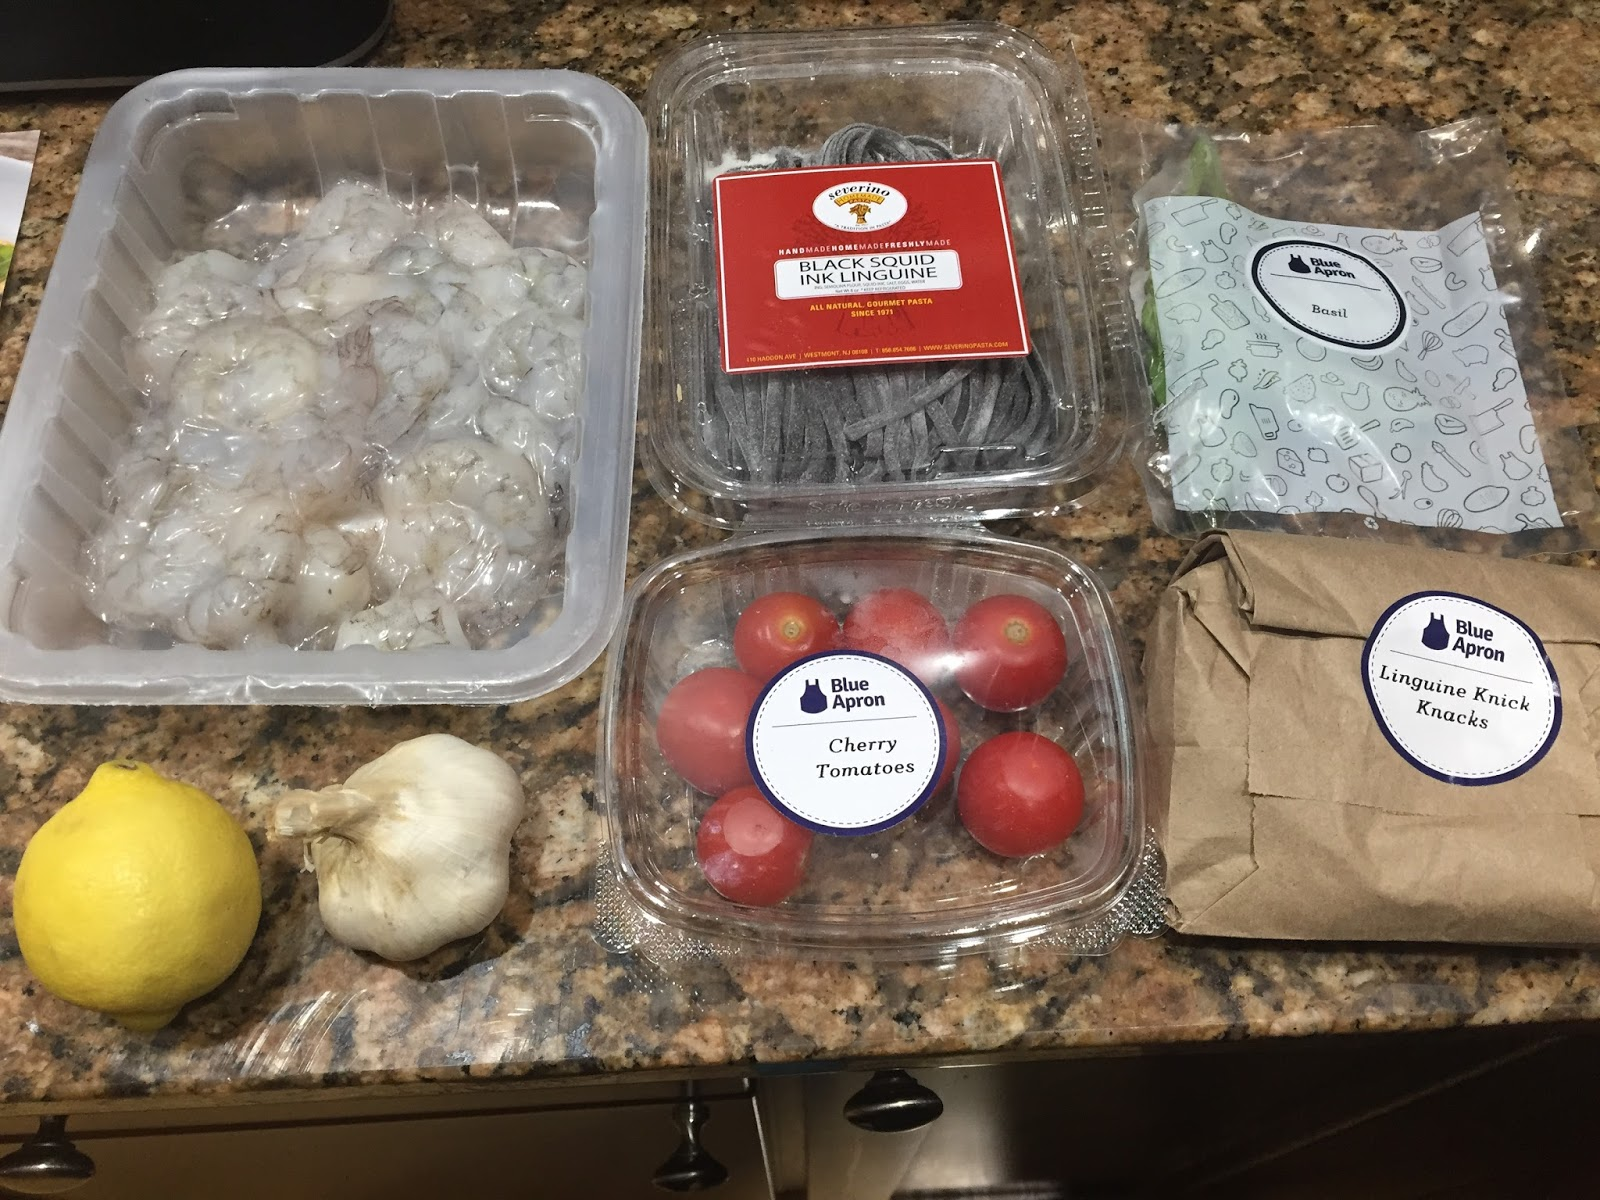 Blue apron packaging waste - I Really Enjoyed All Of The Meals And They Were Very Easy To Make There Was Definitely Some Prep Work Involved Chopping Veggies Cooking Components In